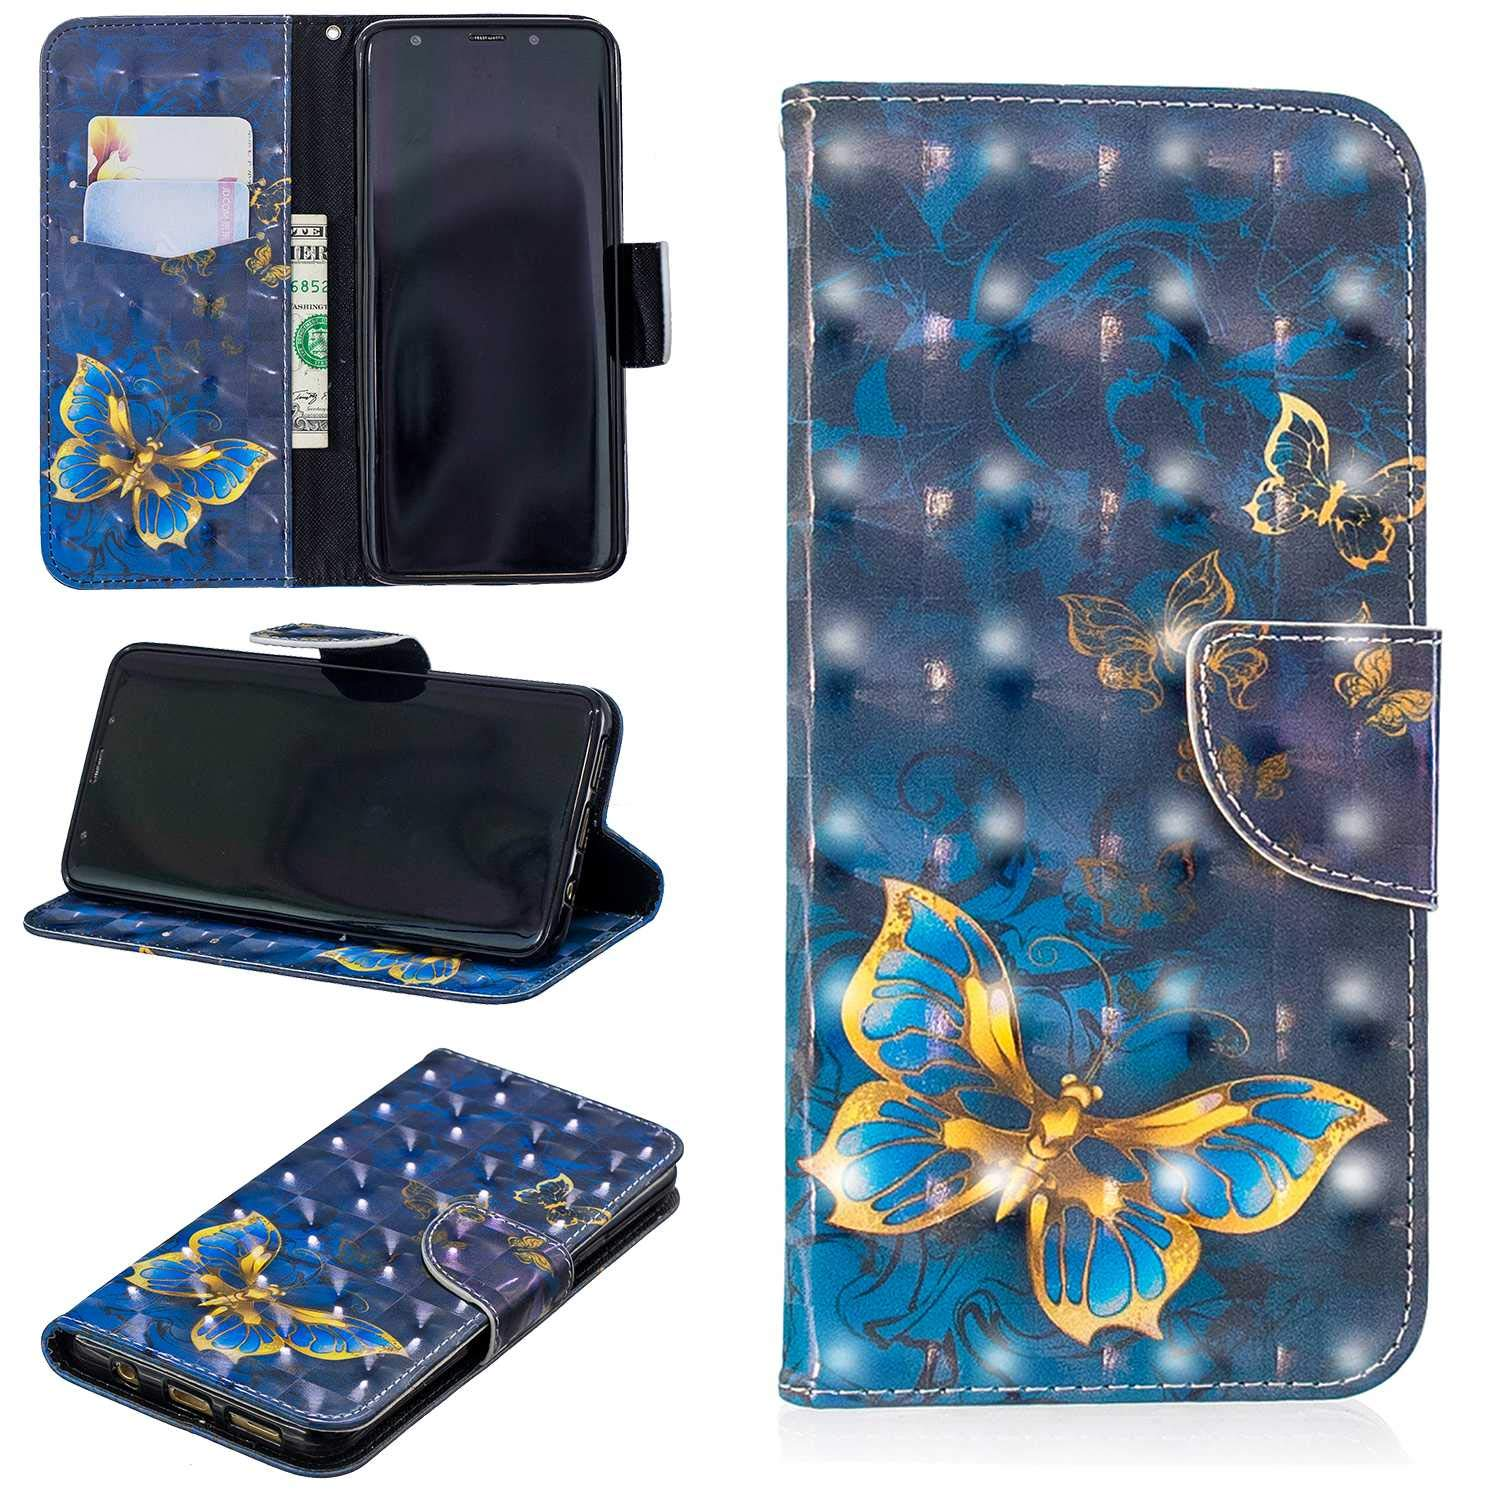 CUSKING Galaxy S9 Plus Case, Premium 3D Design Wallet Case Stand Flip Case with Card Holders and Magnetic Closure, Multi-Functional Shockproof Case for Samsung Galaxy S9 Plus - Blue, Butterfly